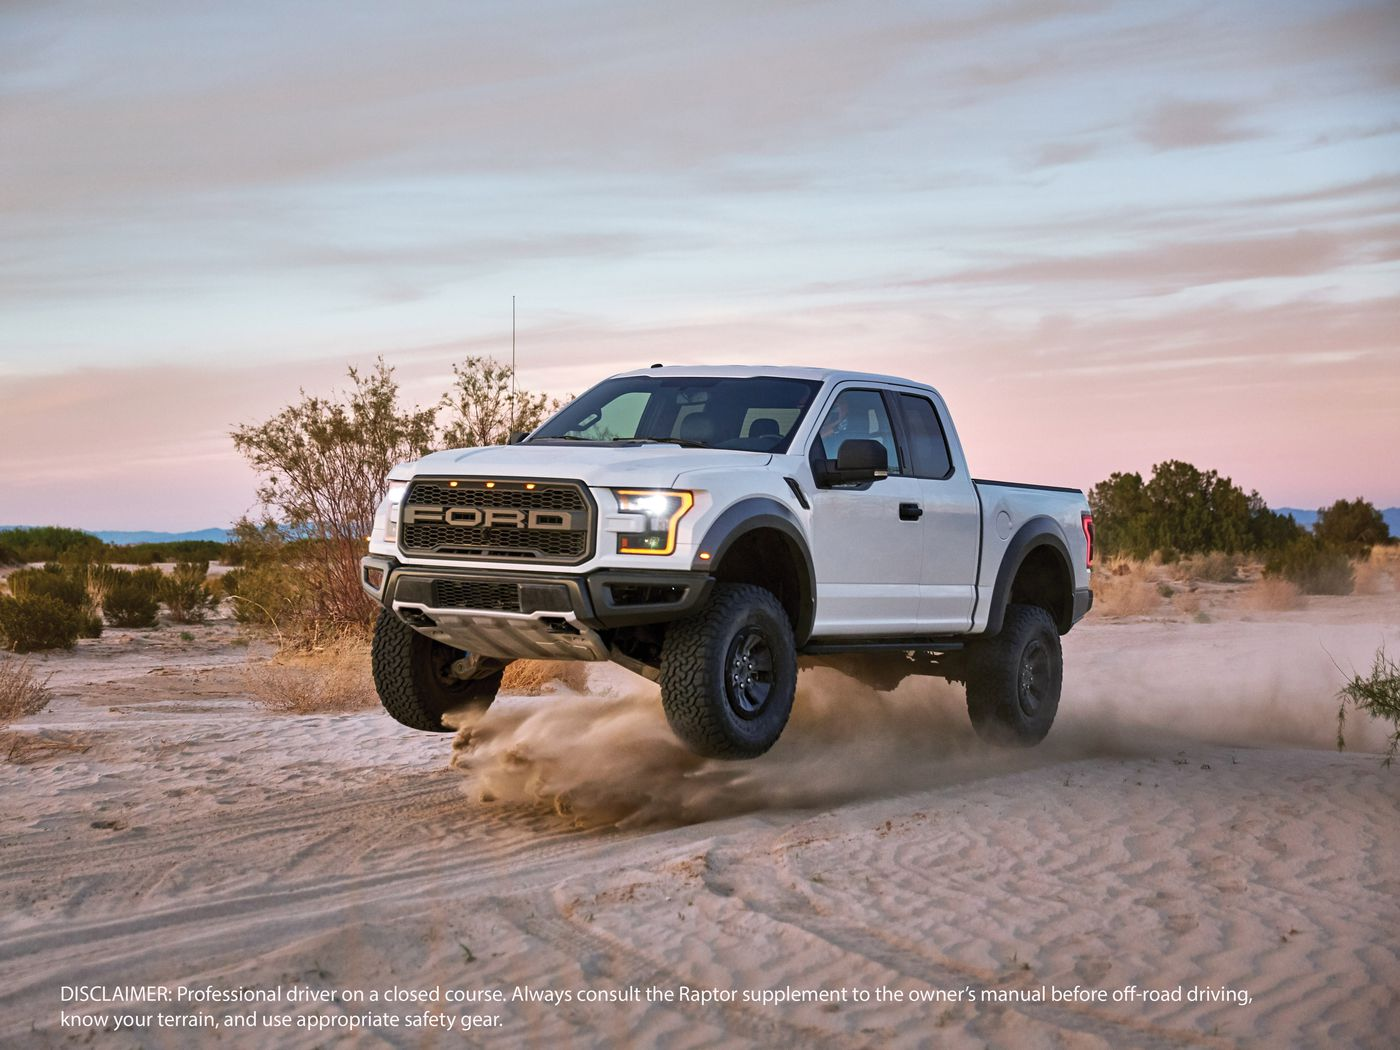 You Can Press The Baja Button In The 2017 Ford Raptor To Make It Eat